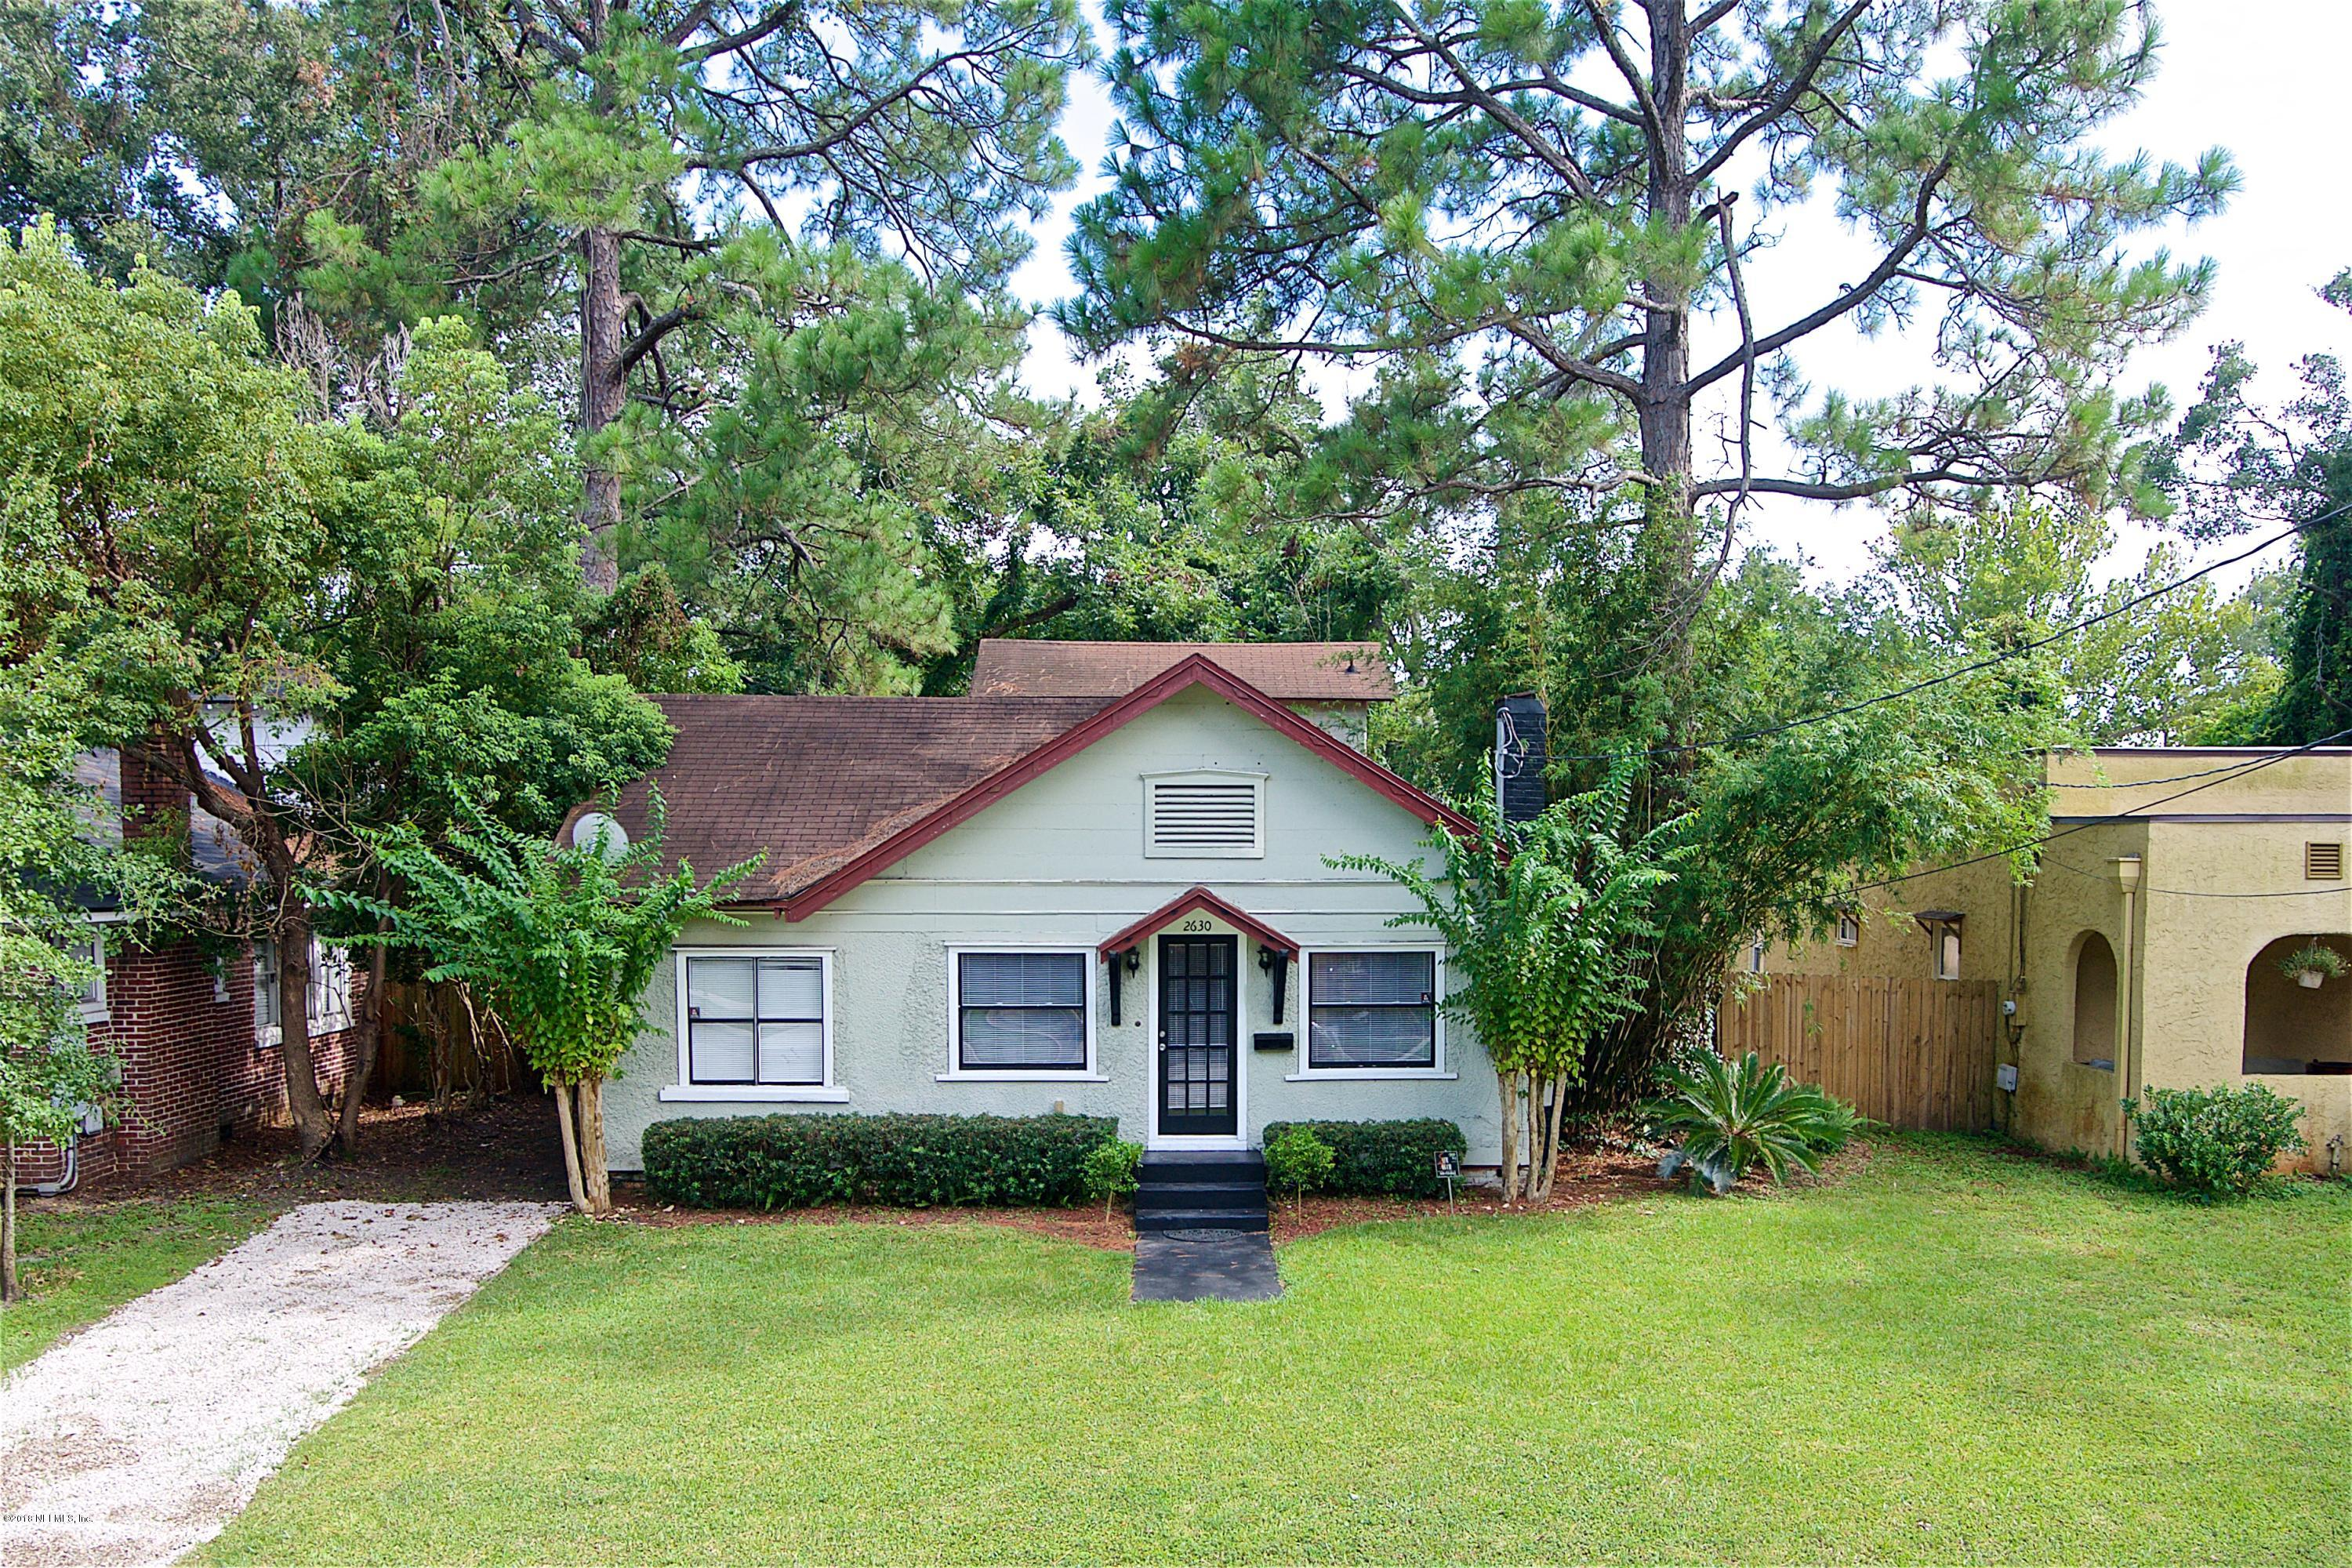 2630 GREEN, JACKSONVILLE, FLORIDA 32204, 3 Bedrooms Bedrooms, ,1 BathroomBathrooms,Residential - single family,For sale,GREEN,952214